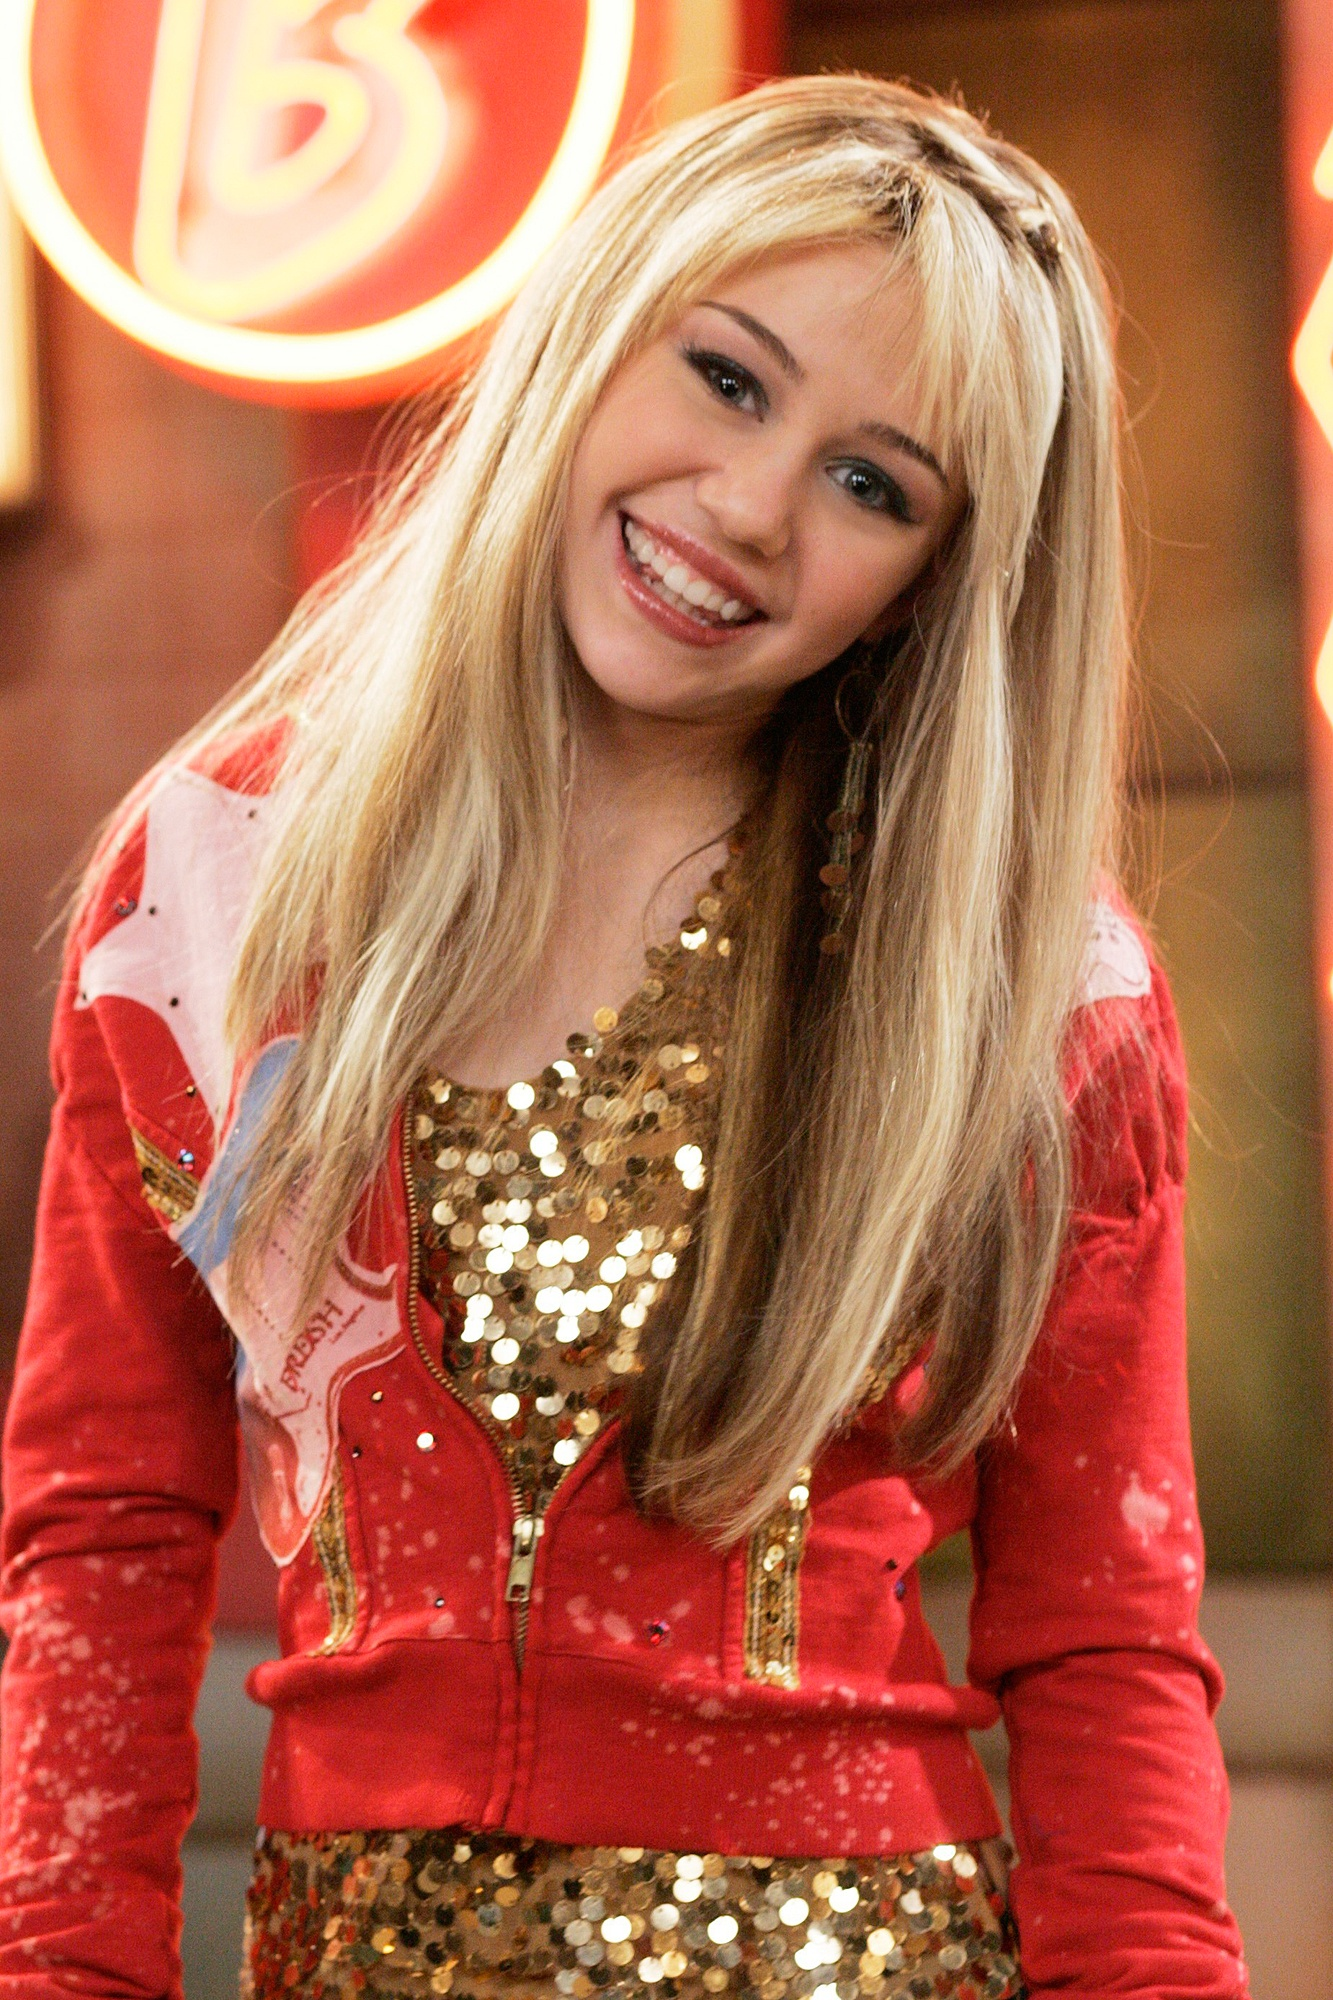 hannah montana 2000 10 Huge Disney Channel Stars Then And Now